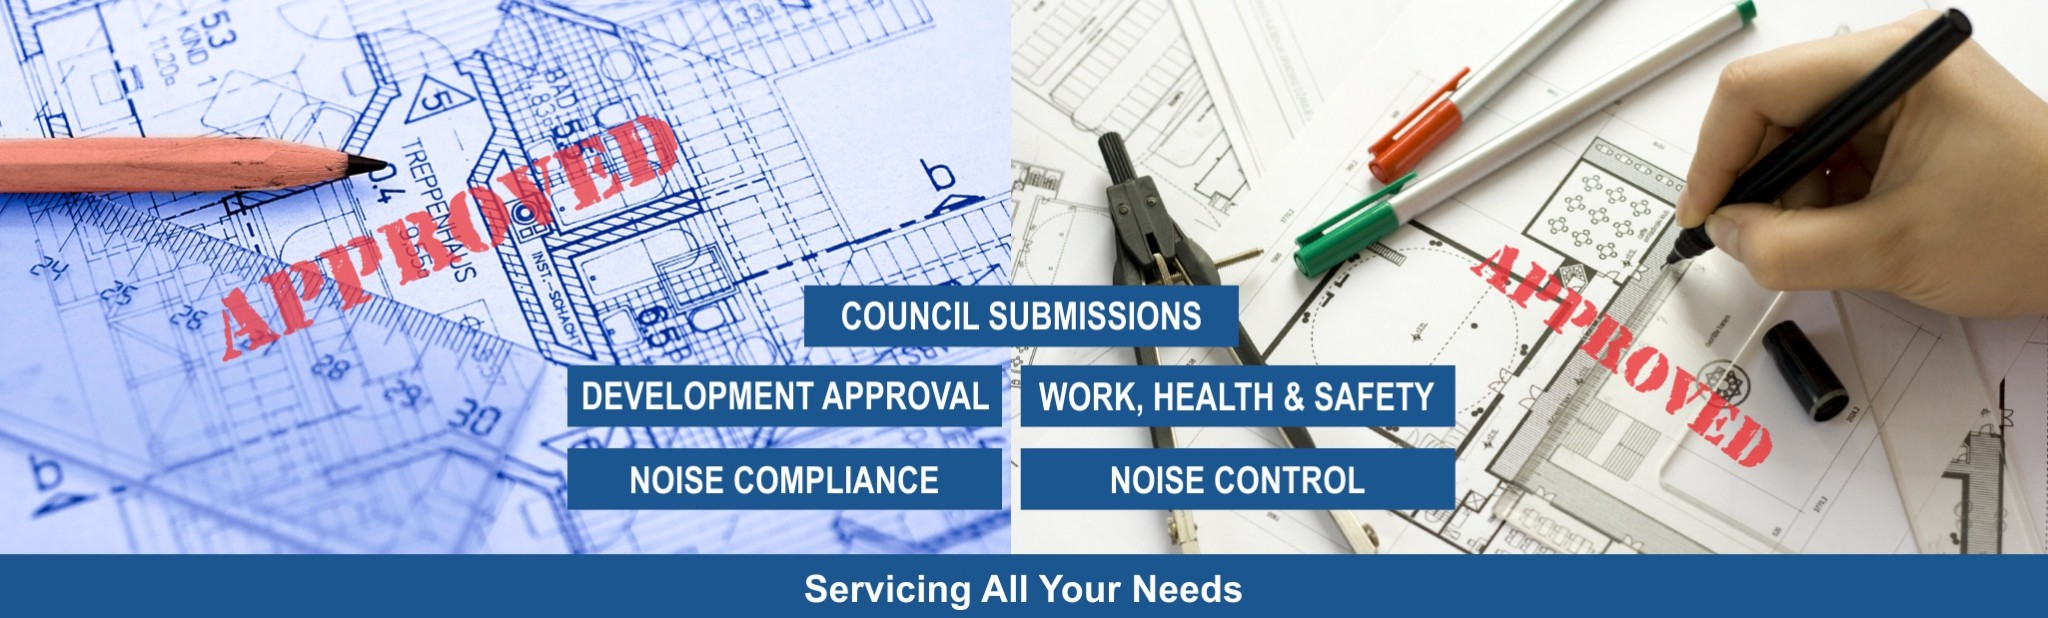 Council Submissions & Noise Control